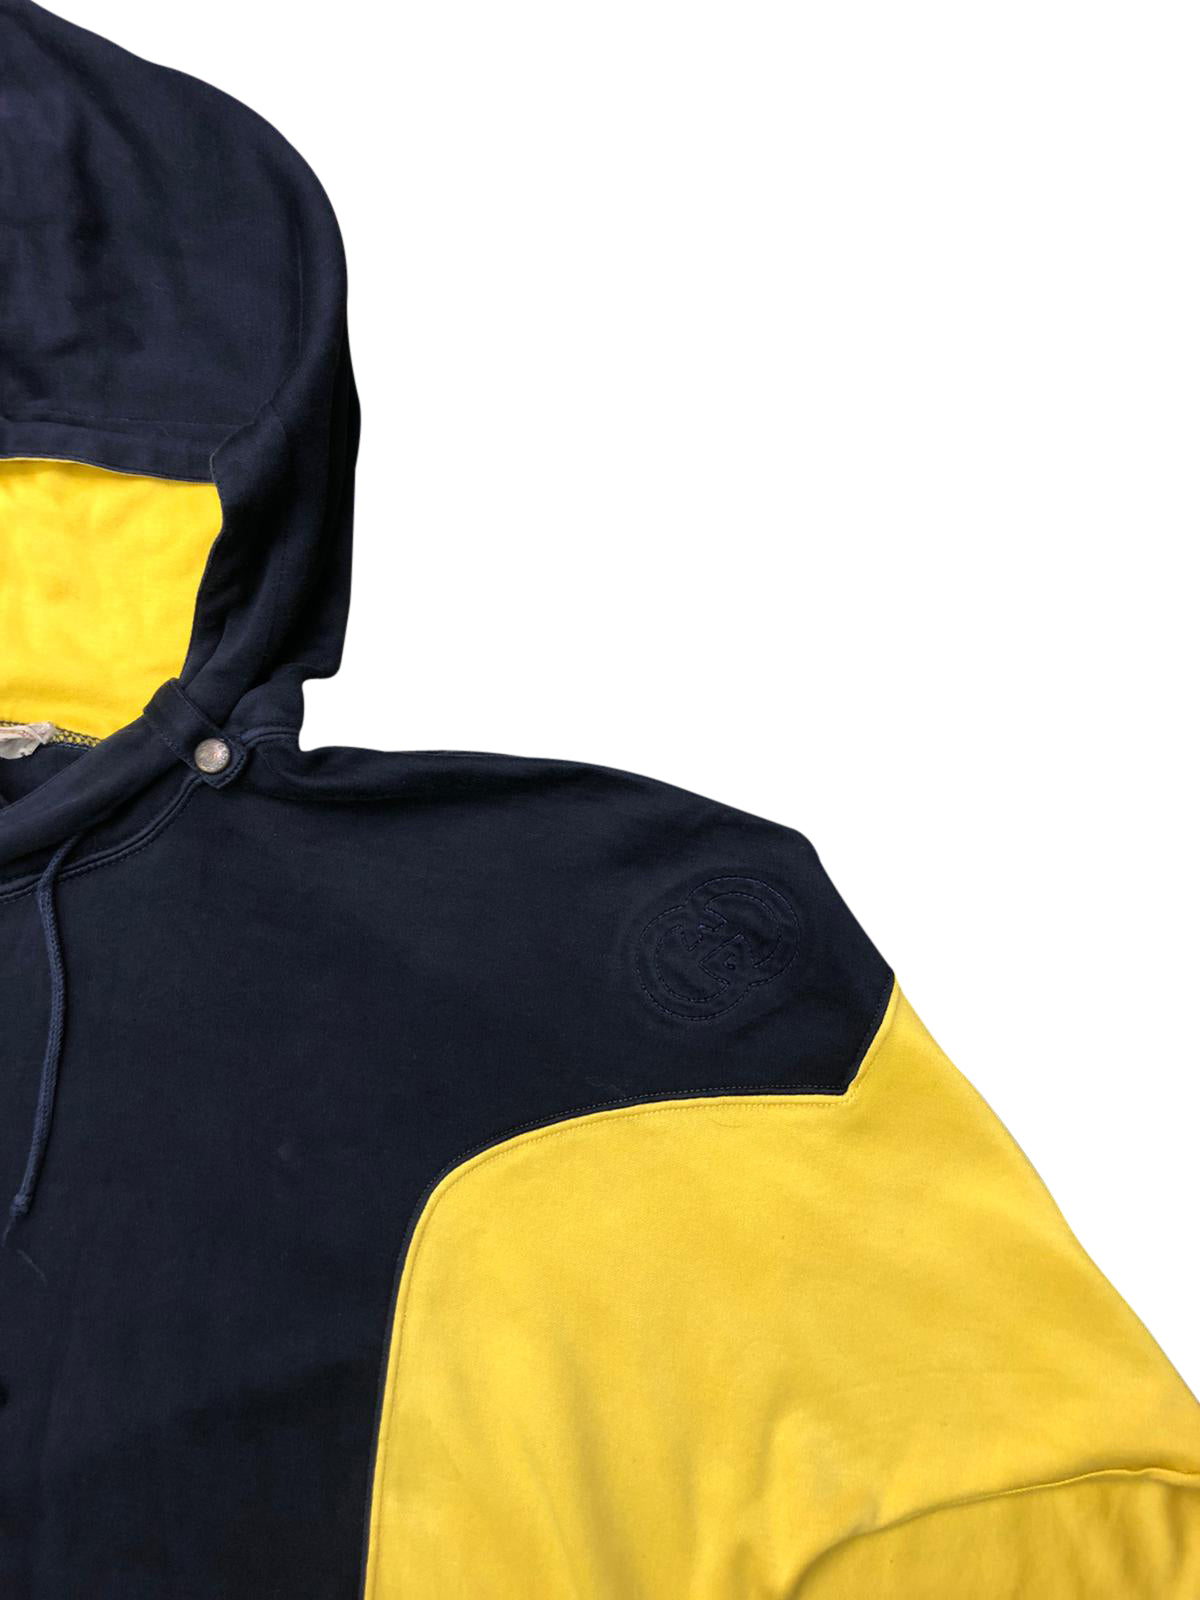 Gucci Panelled Hoodie (Yellow/Navy) UK 10-14